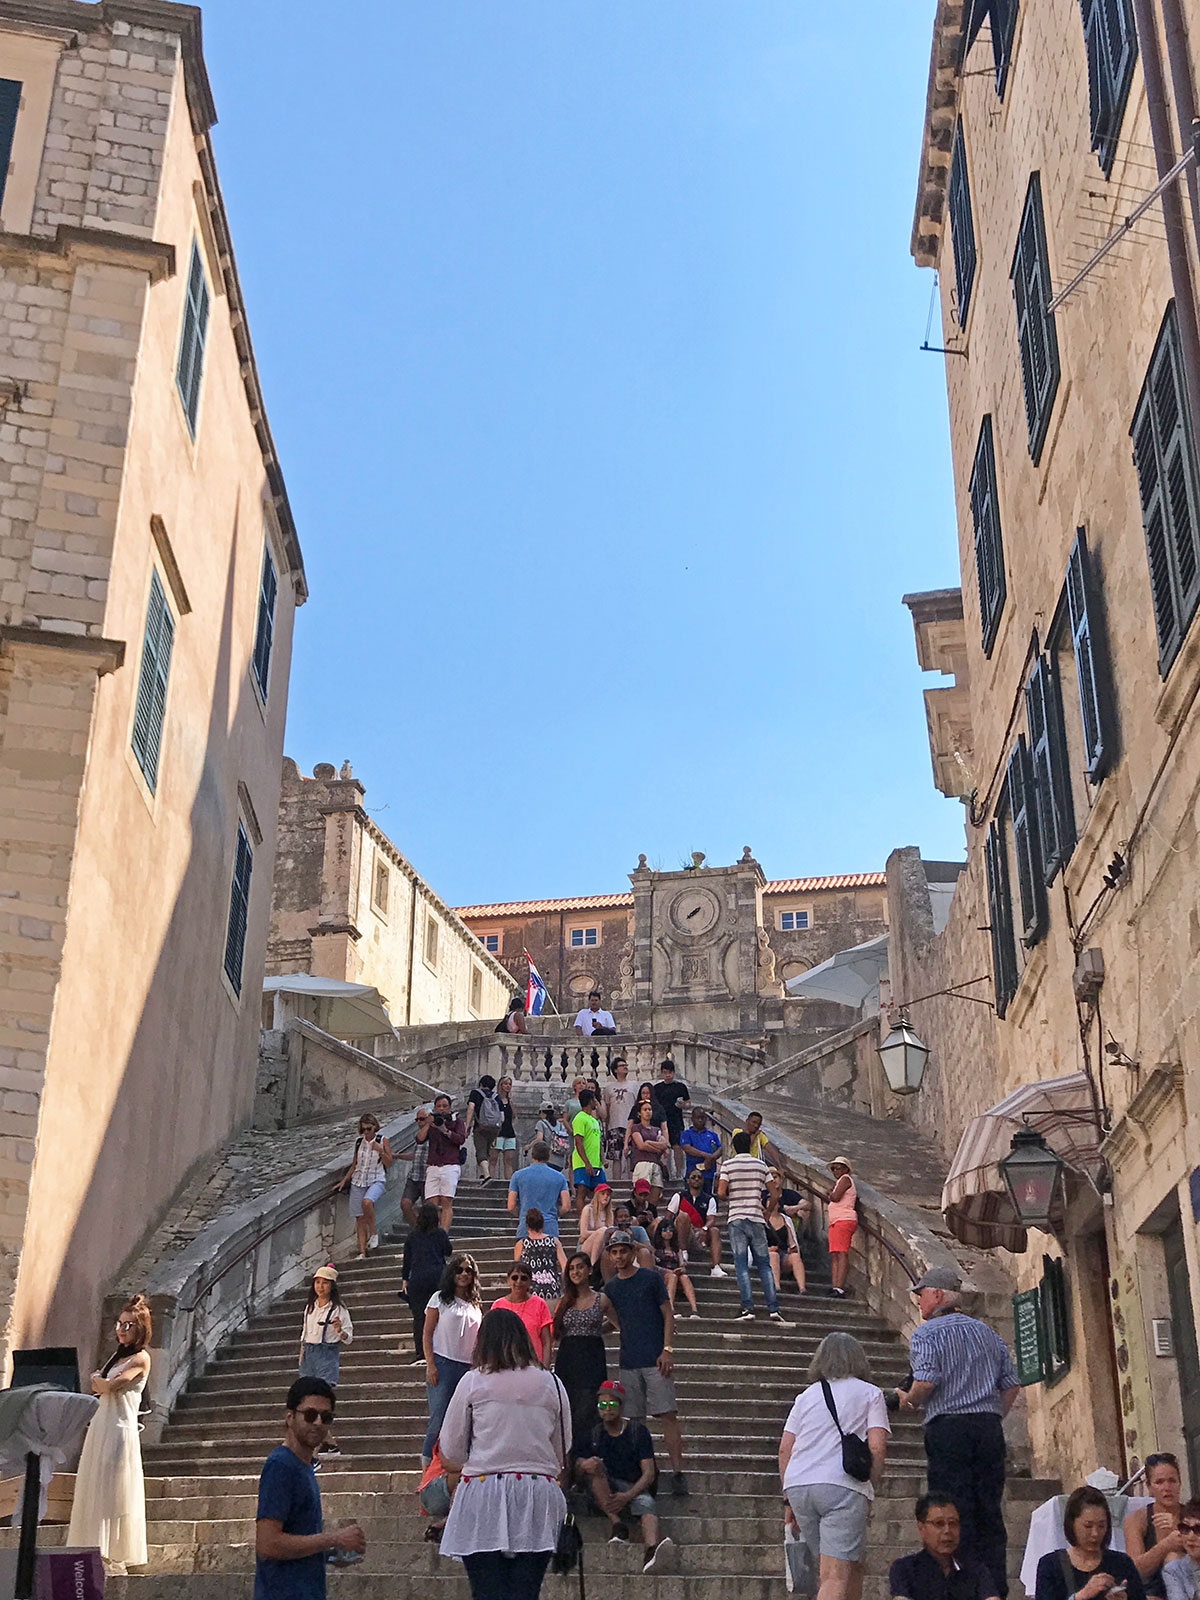 Dubrovnik-walk-of-shame-stairs-game-of-thrones.jpg